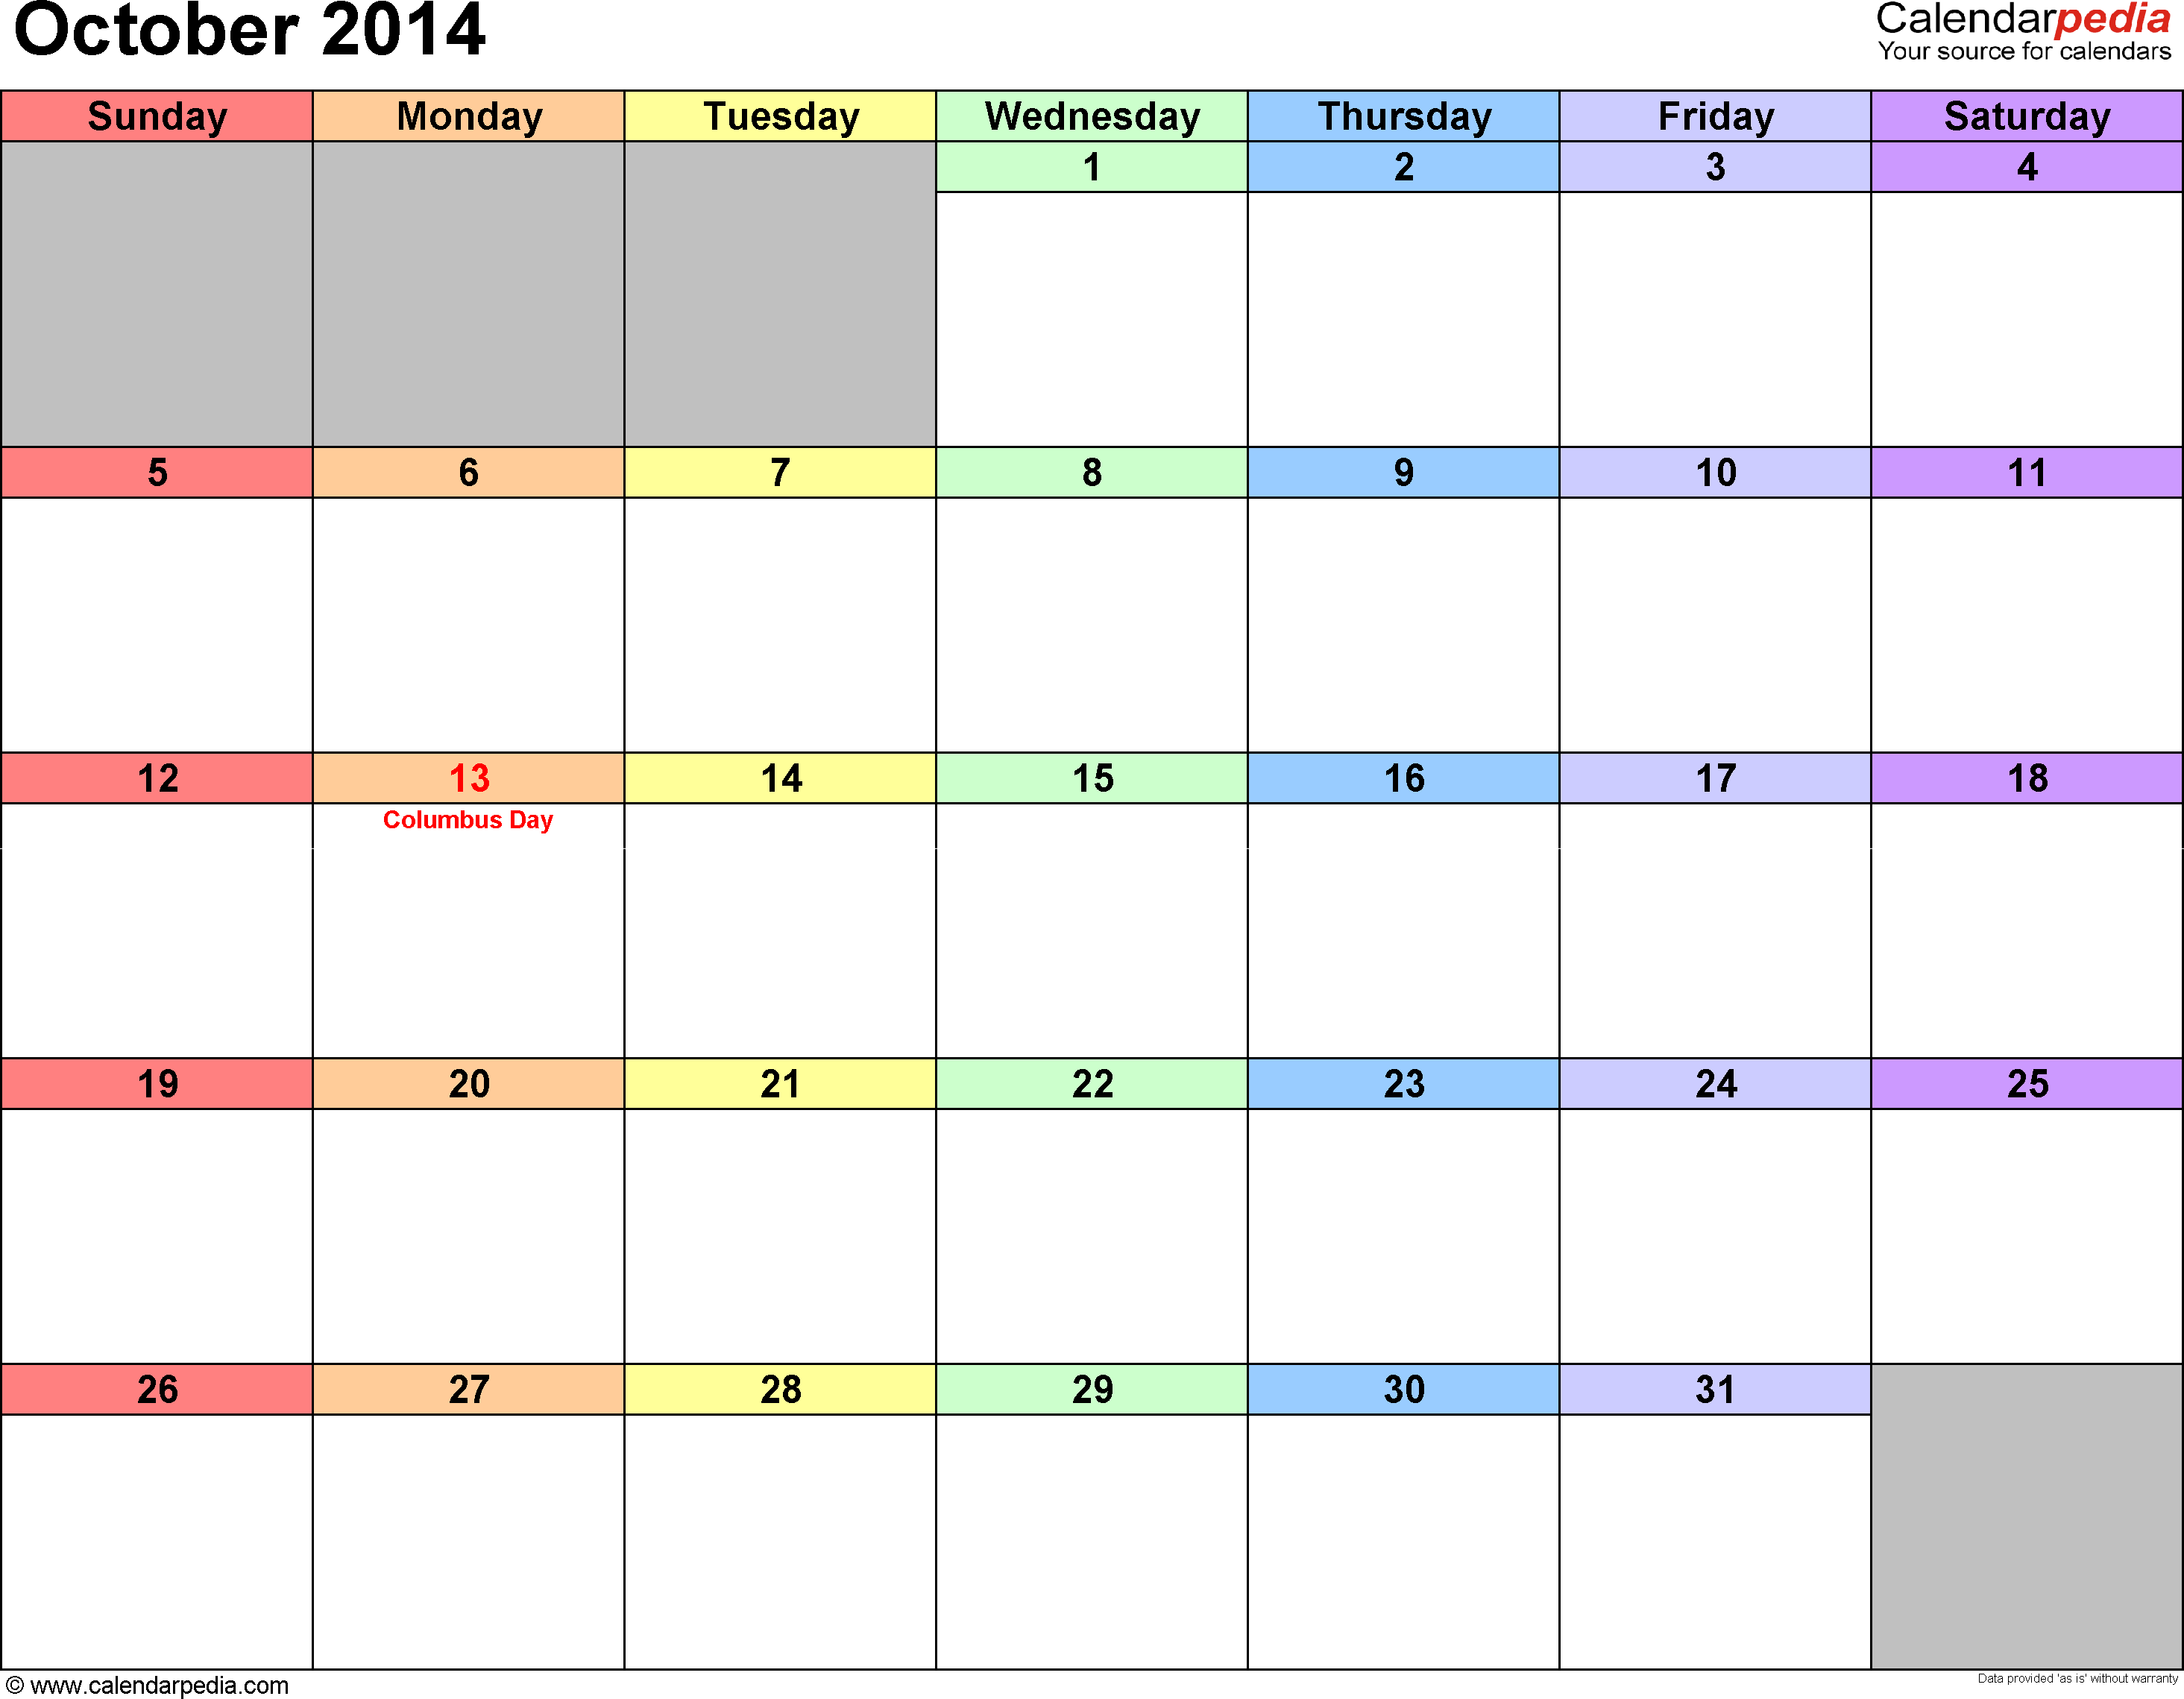 October 2014 calendar printable template